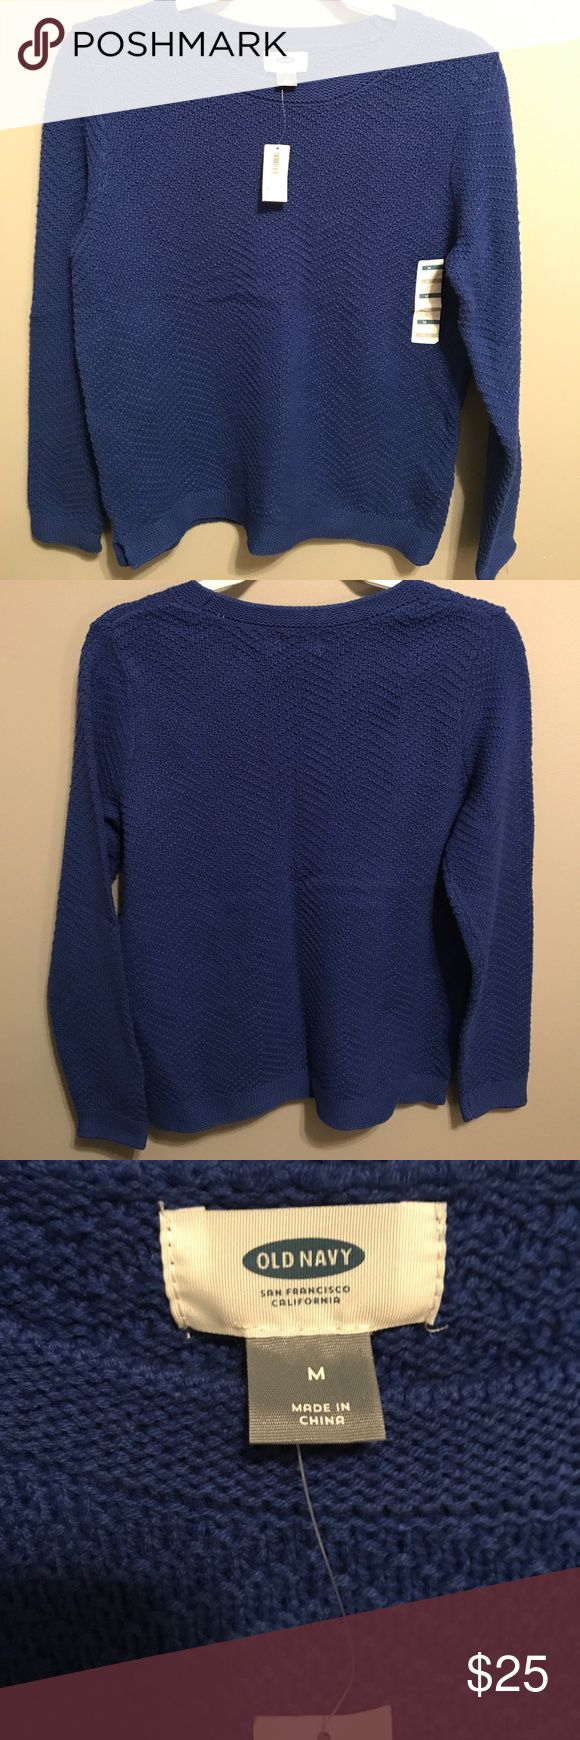 Old Navy sweater Thick knit royal blue sweater. Never worn with tags still on the price is ripped off because it was given as a gift Old Navy Sweaters Crew & Scoop Necks